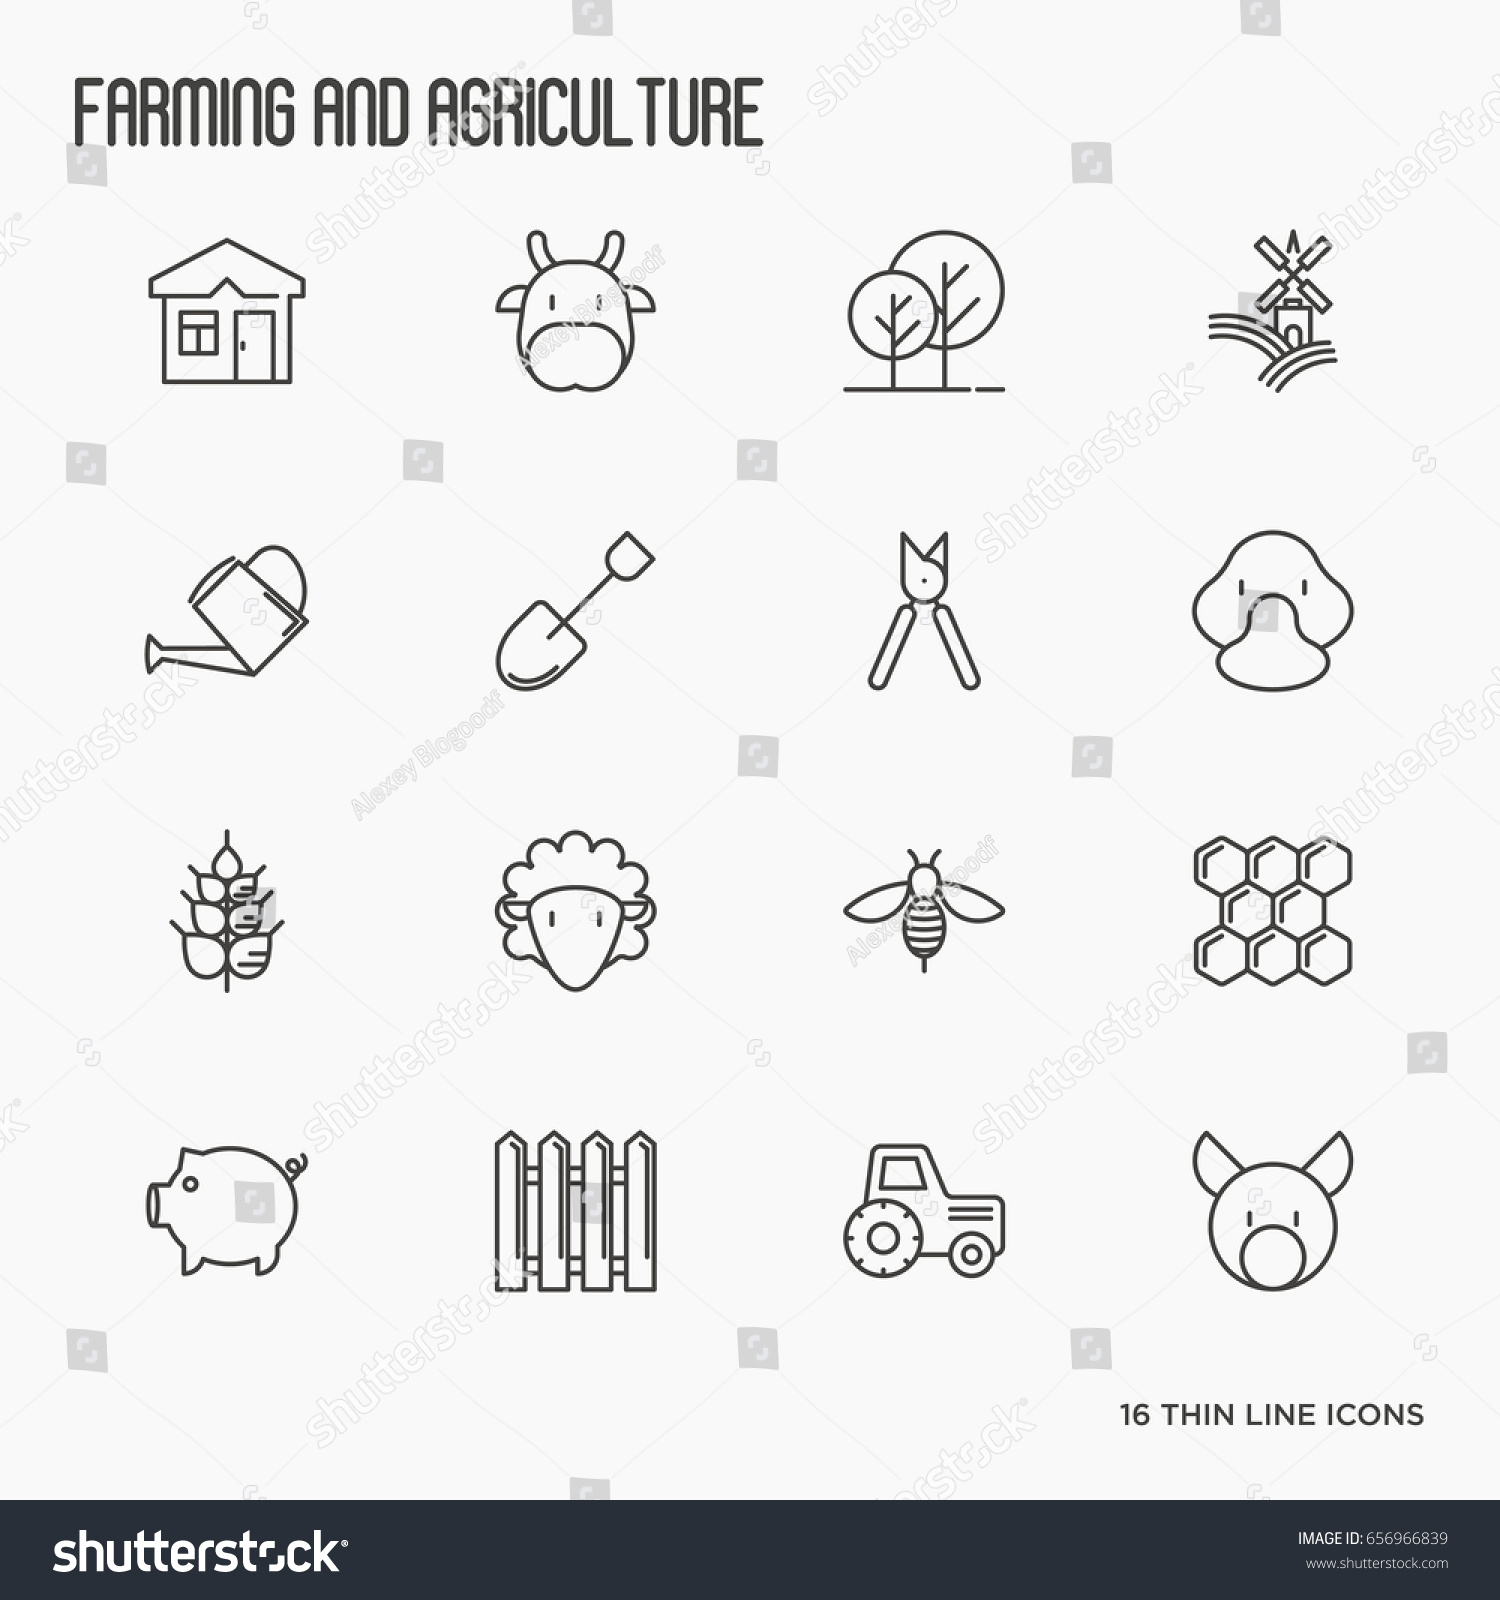 Agriculture icons different animals tools symbols stock vector agriculture icons with different animals tools and symbols for eco products farming flyers and buycottarizona